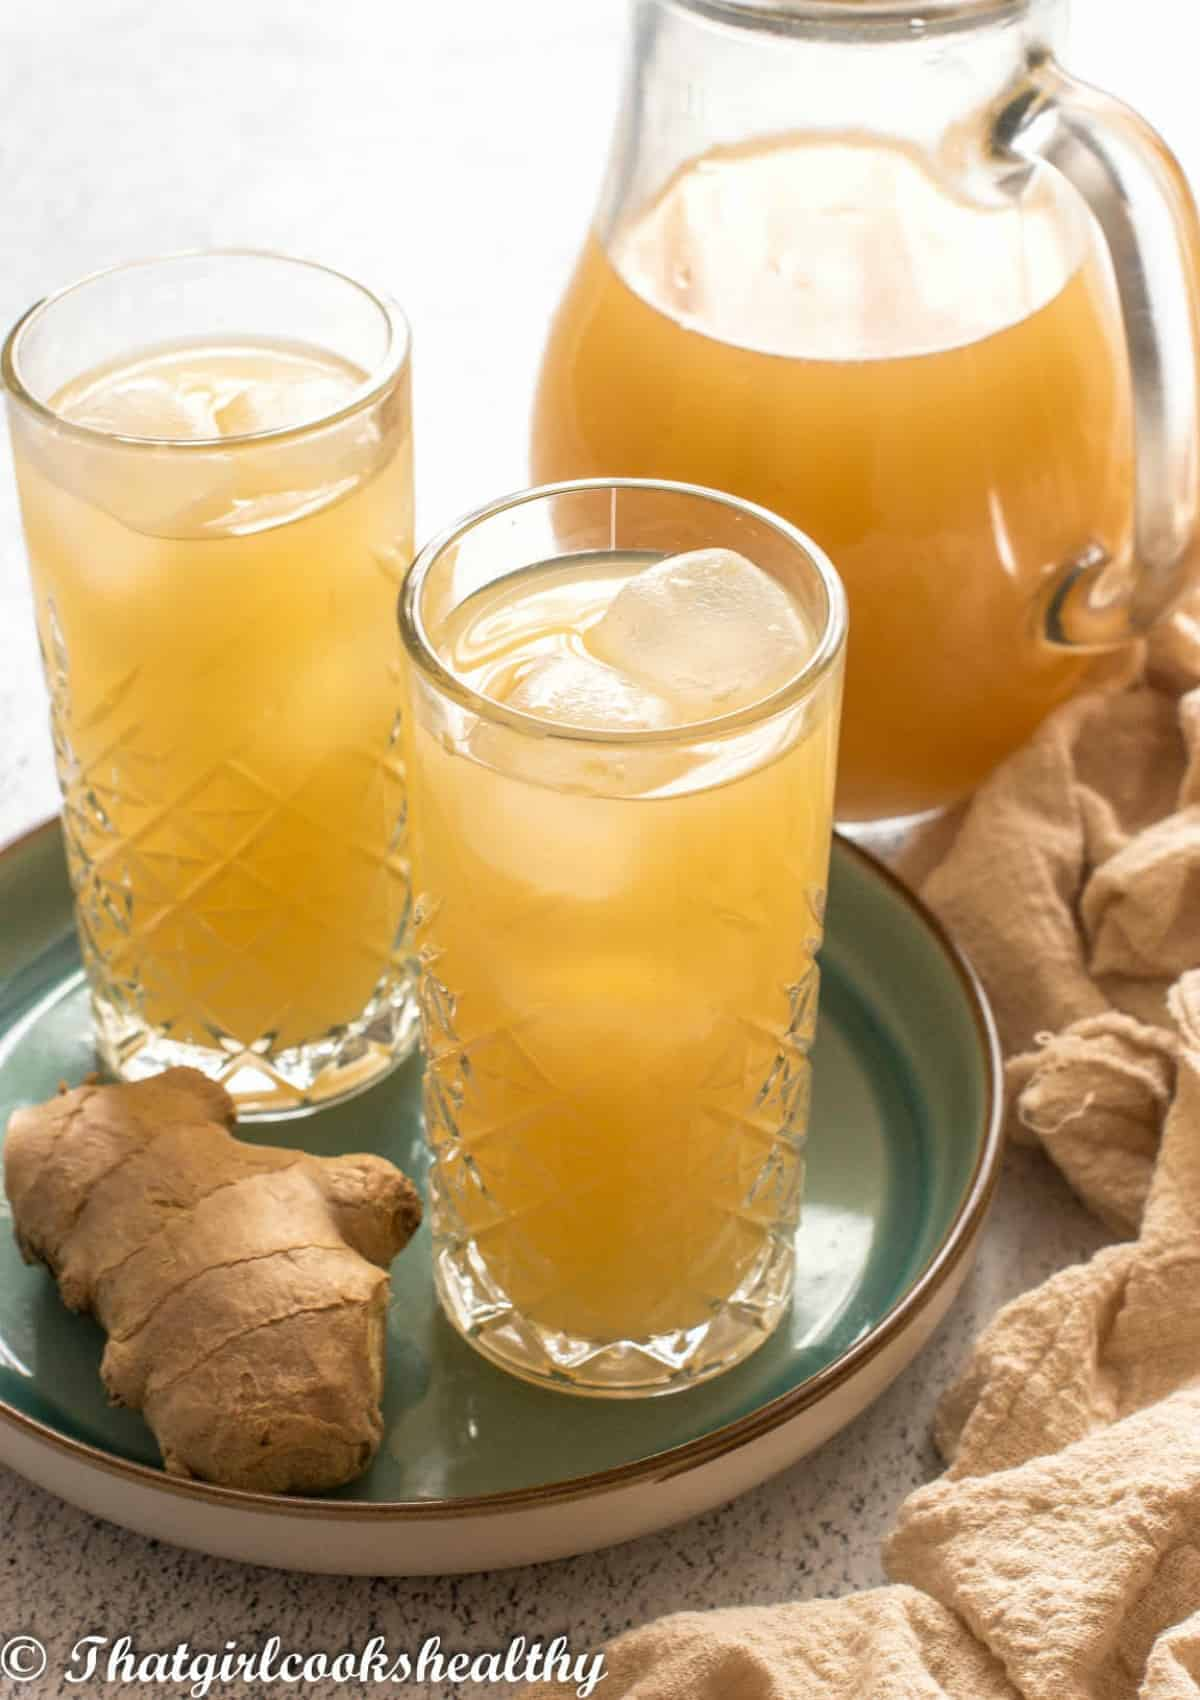 two glasses of ginger beer and jug